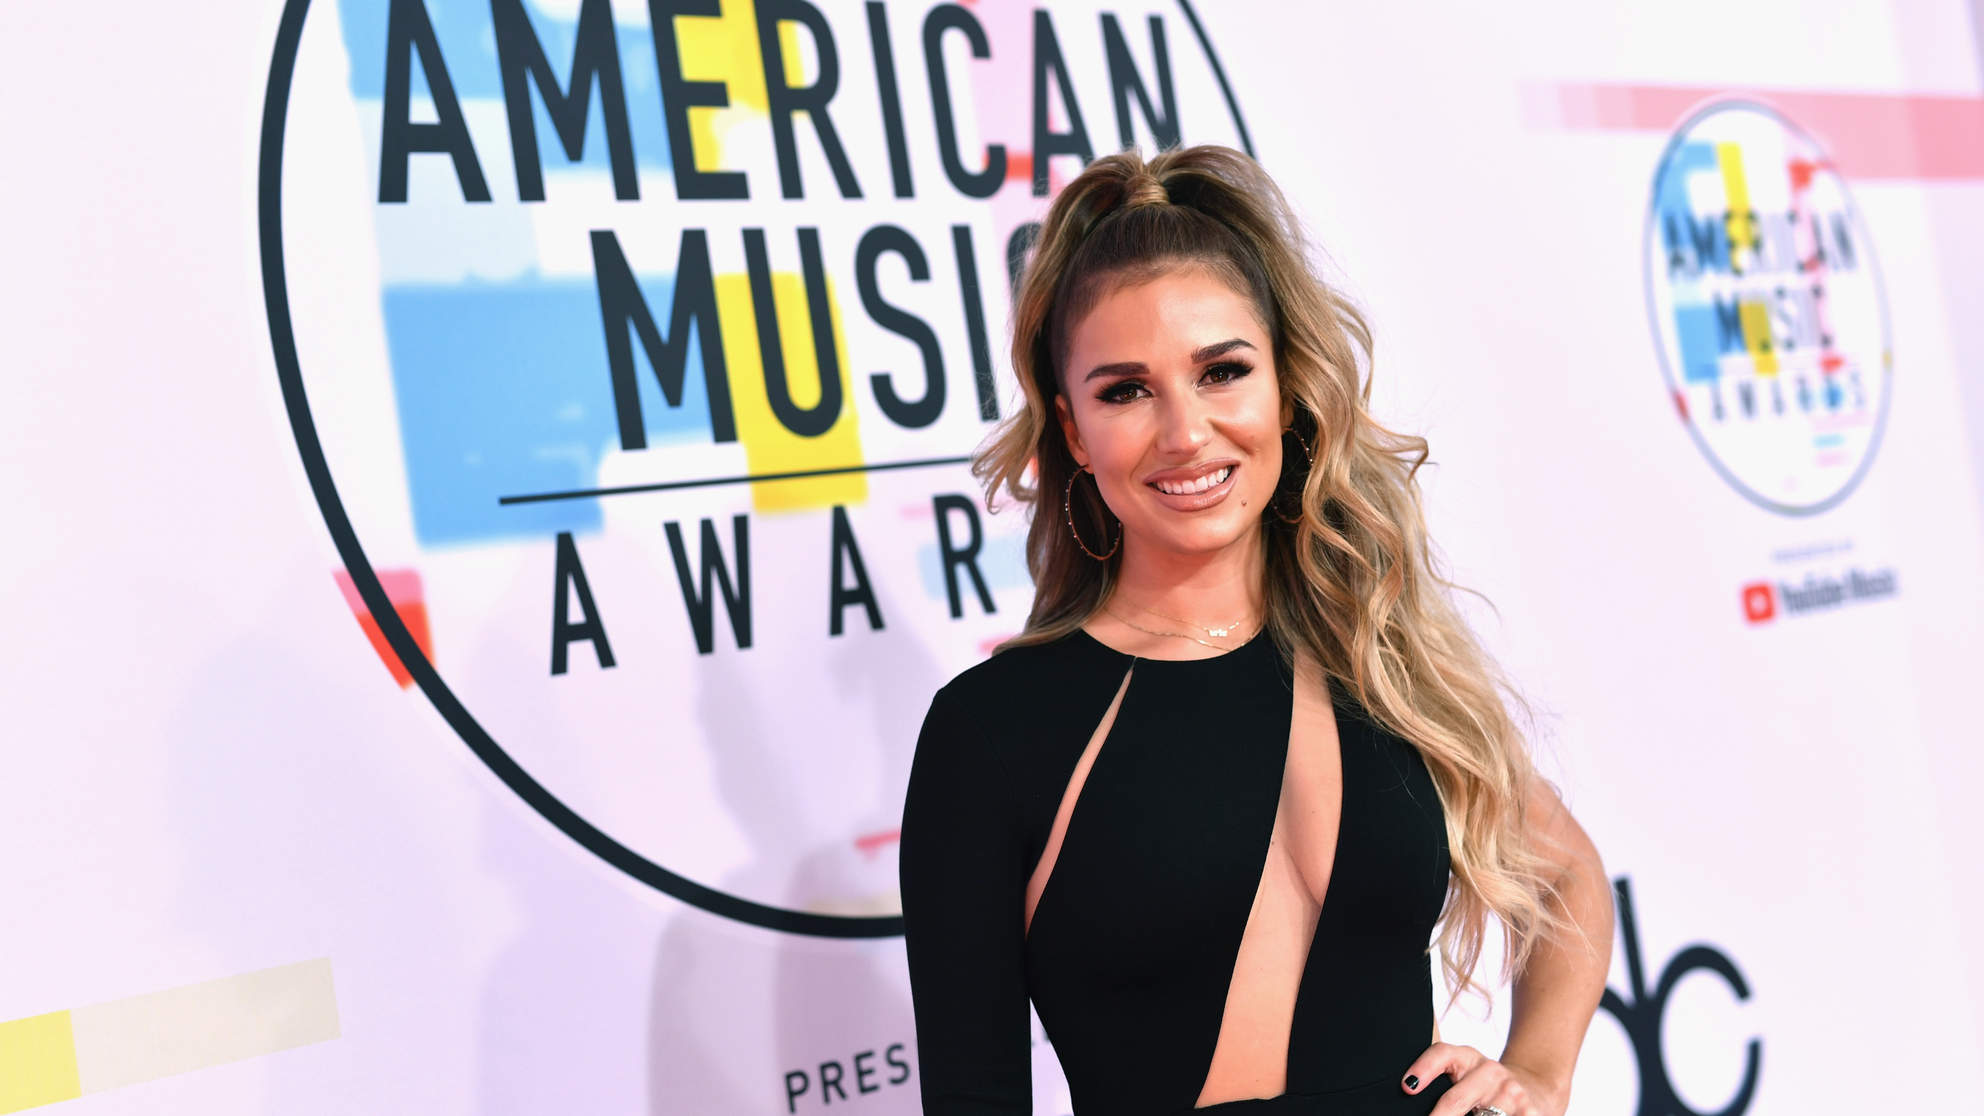 Jessie James Decker Hairstyle Trends 2020